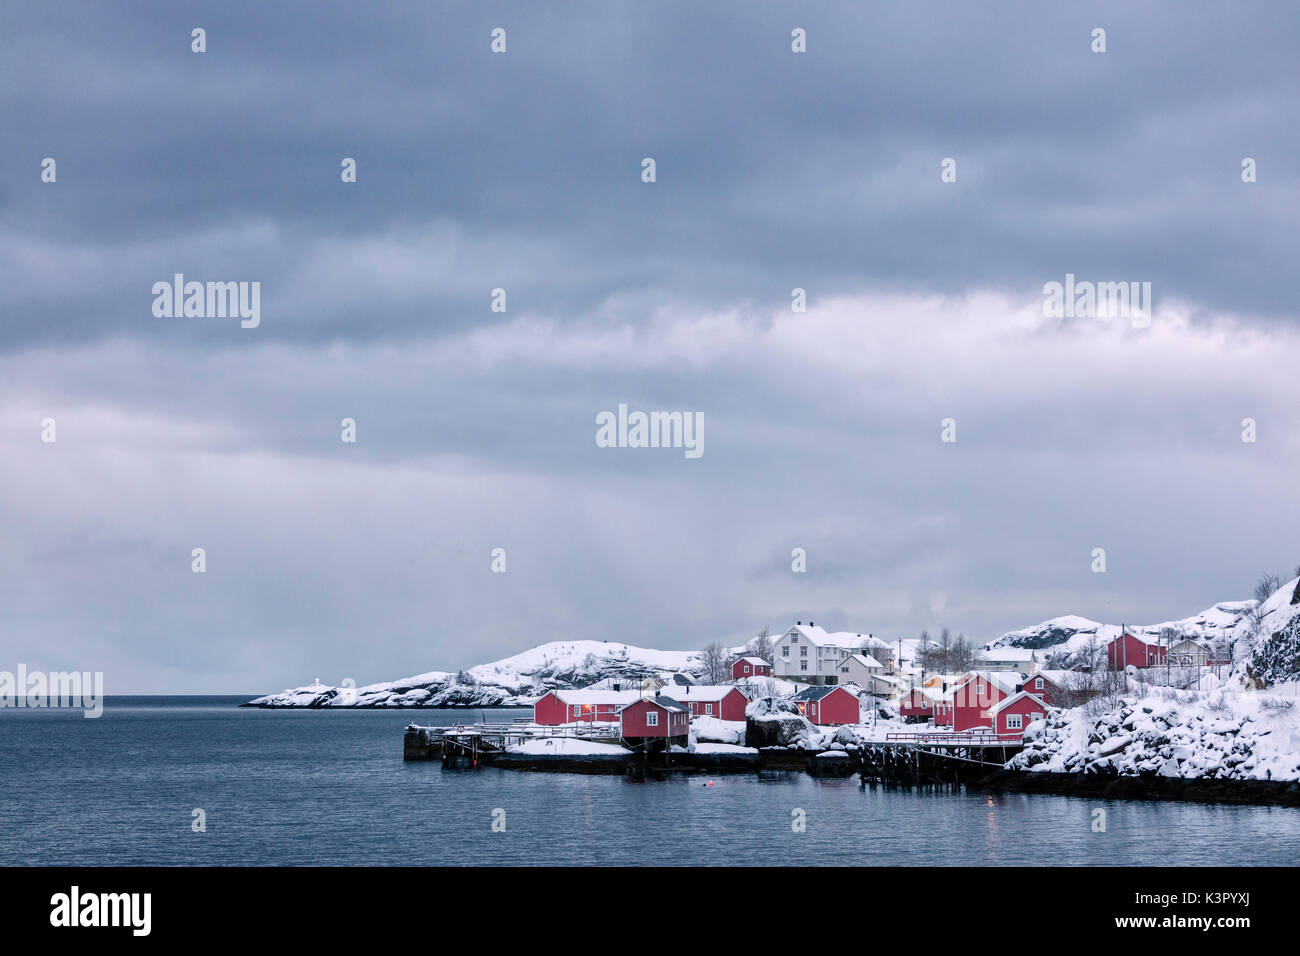 Cold sea and snowy peaks frame the fishing village at dusk Nusfjord Nordland Lofoten Islands Northern Norway Europe - Stock Image